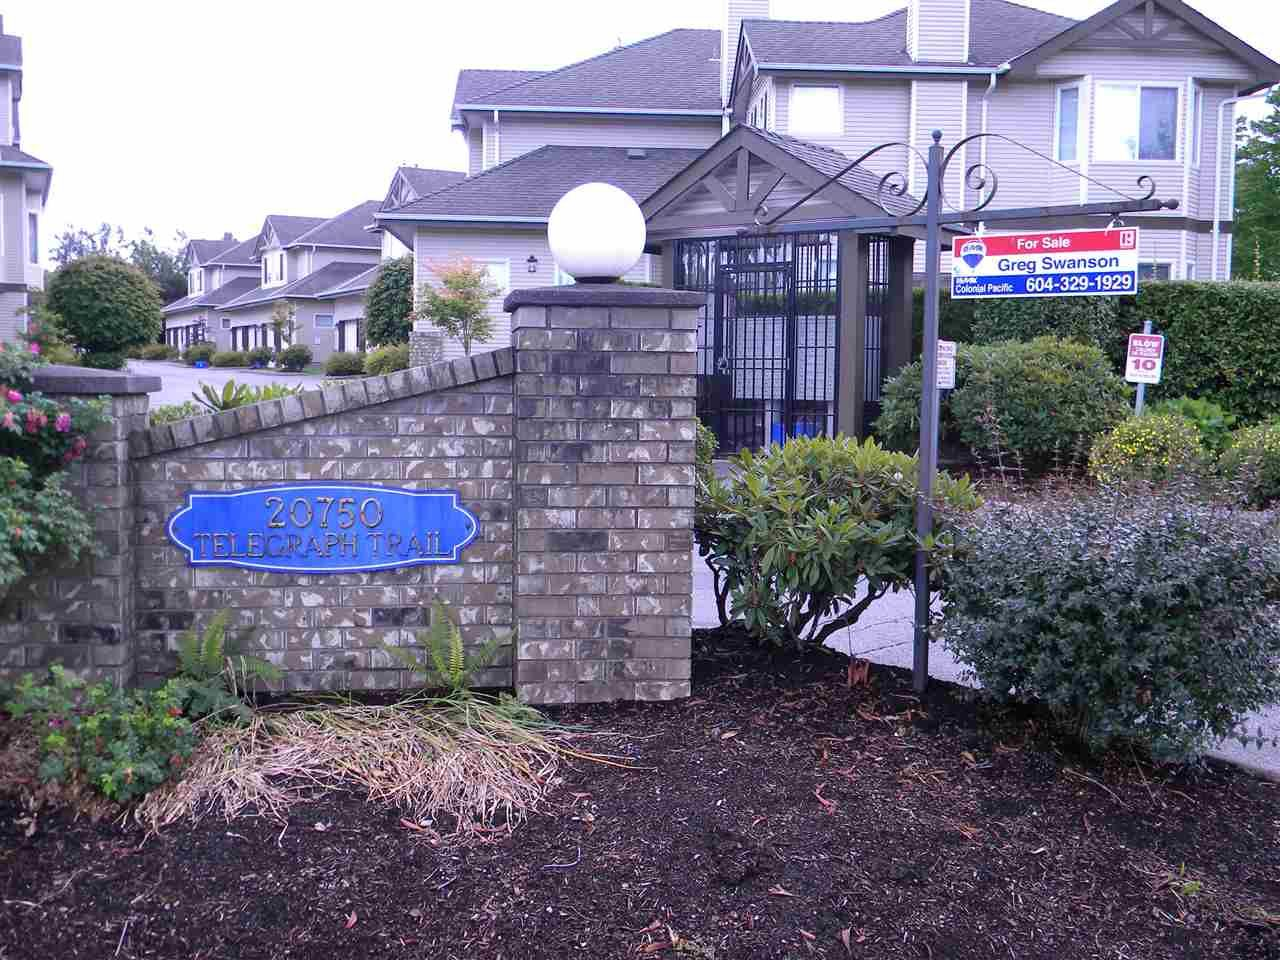 """Main Photo: 6 20750 TELEGRAPH Trail in Langley: Walnut Grove Townhouse for sale in """"Heritage Glen"""" : MLS®# R2081059"""